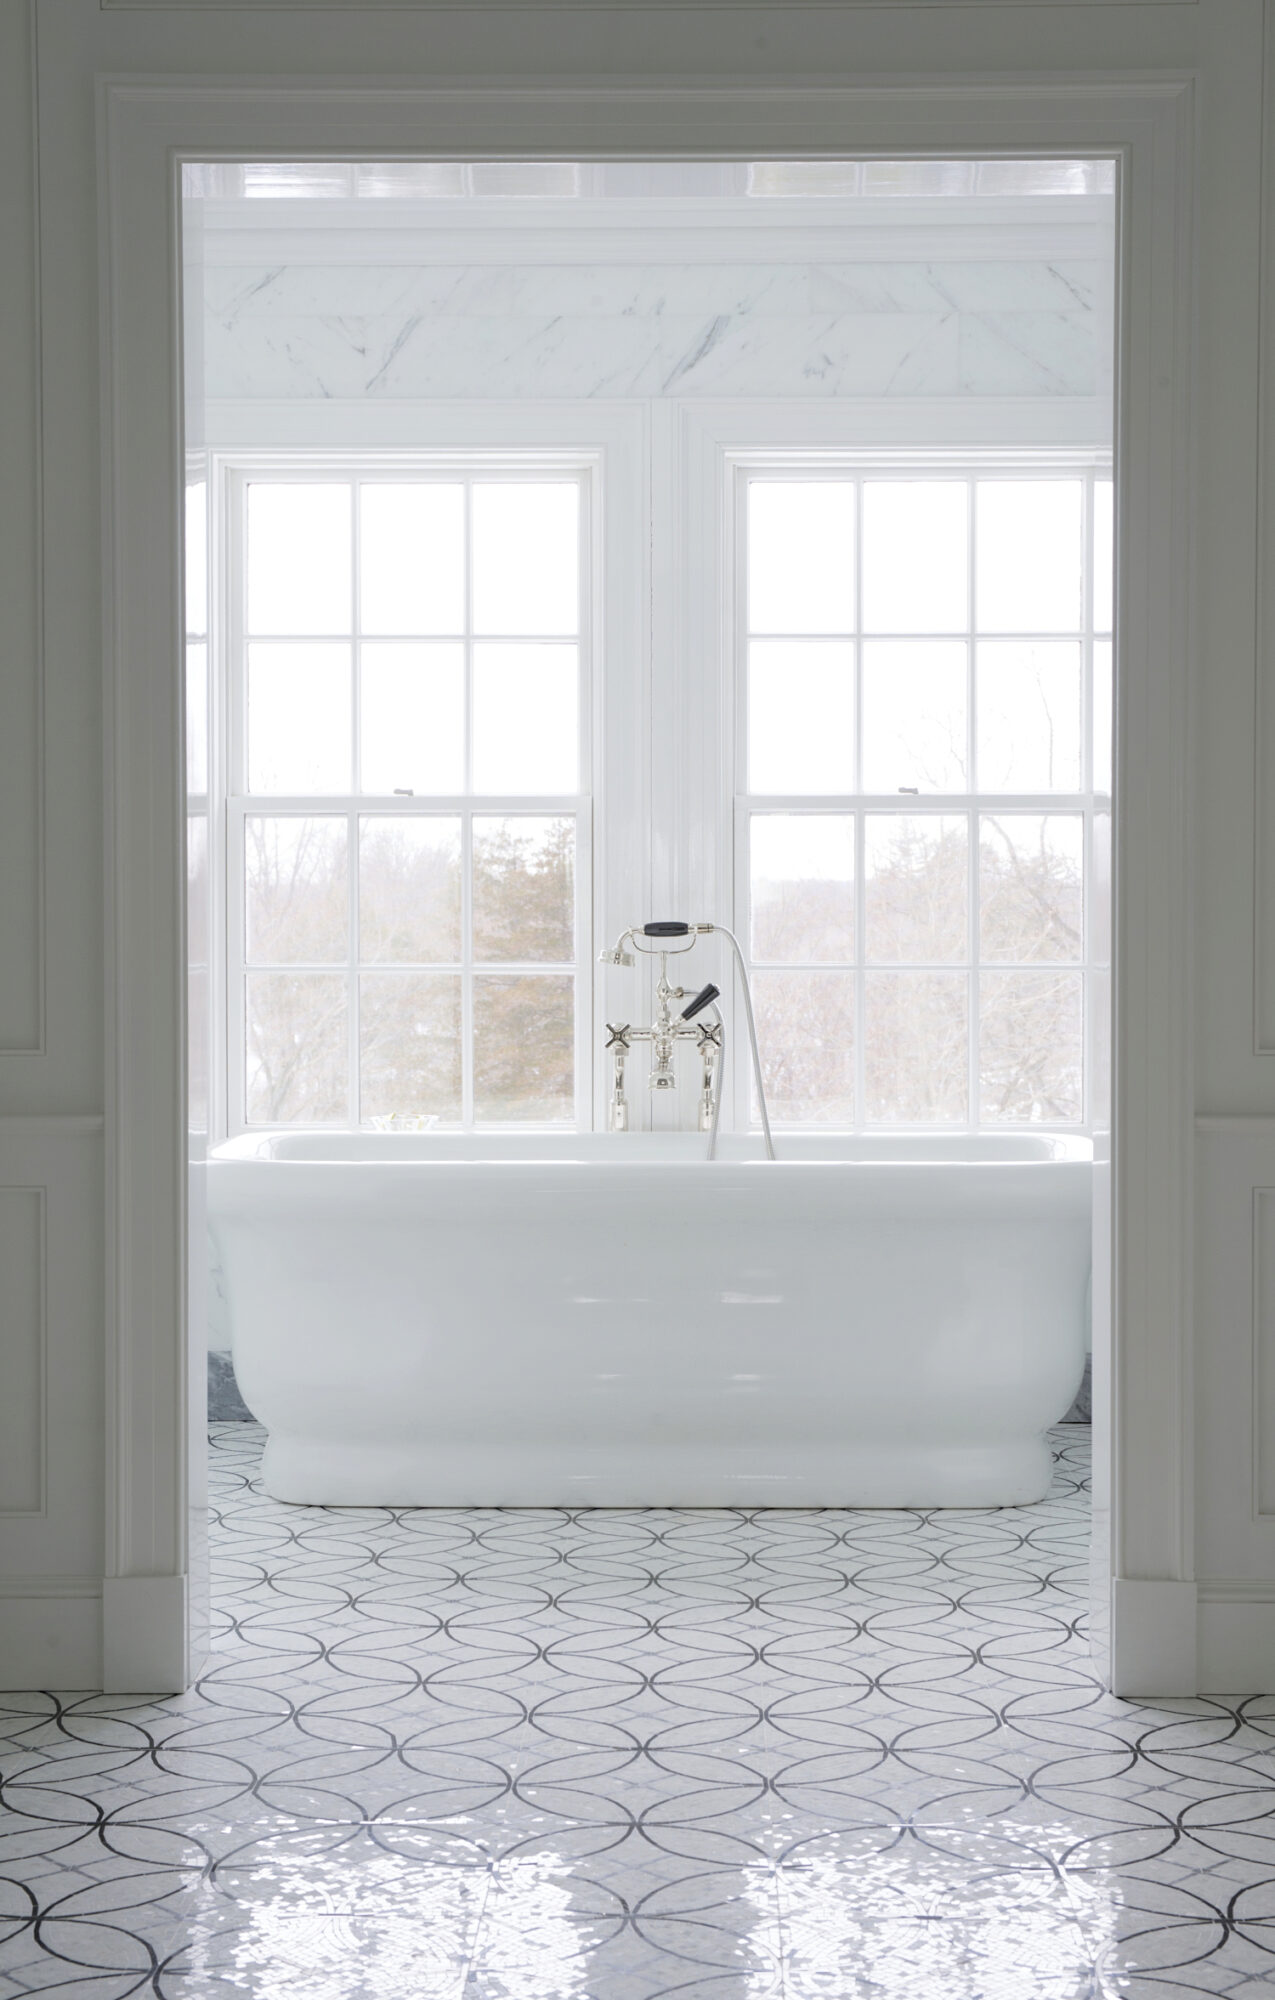 A sunlit bathroom with a standalone tub and large windows